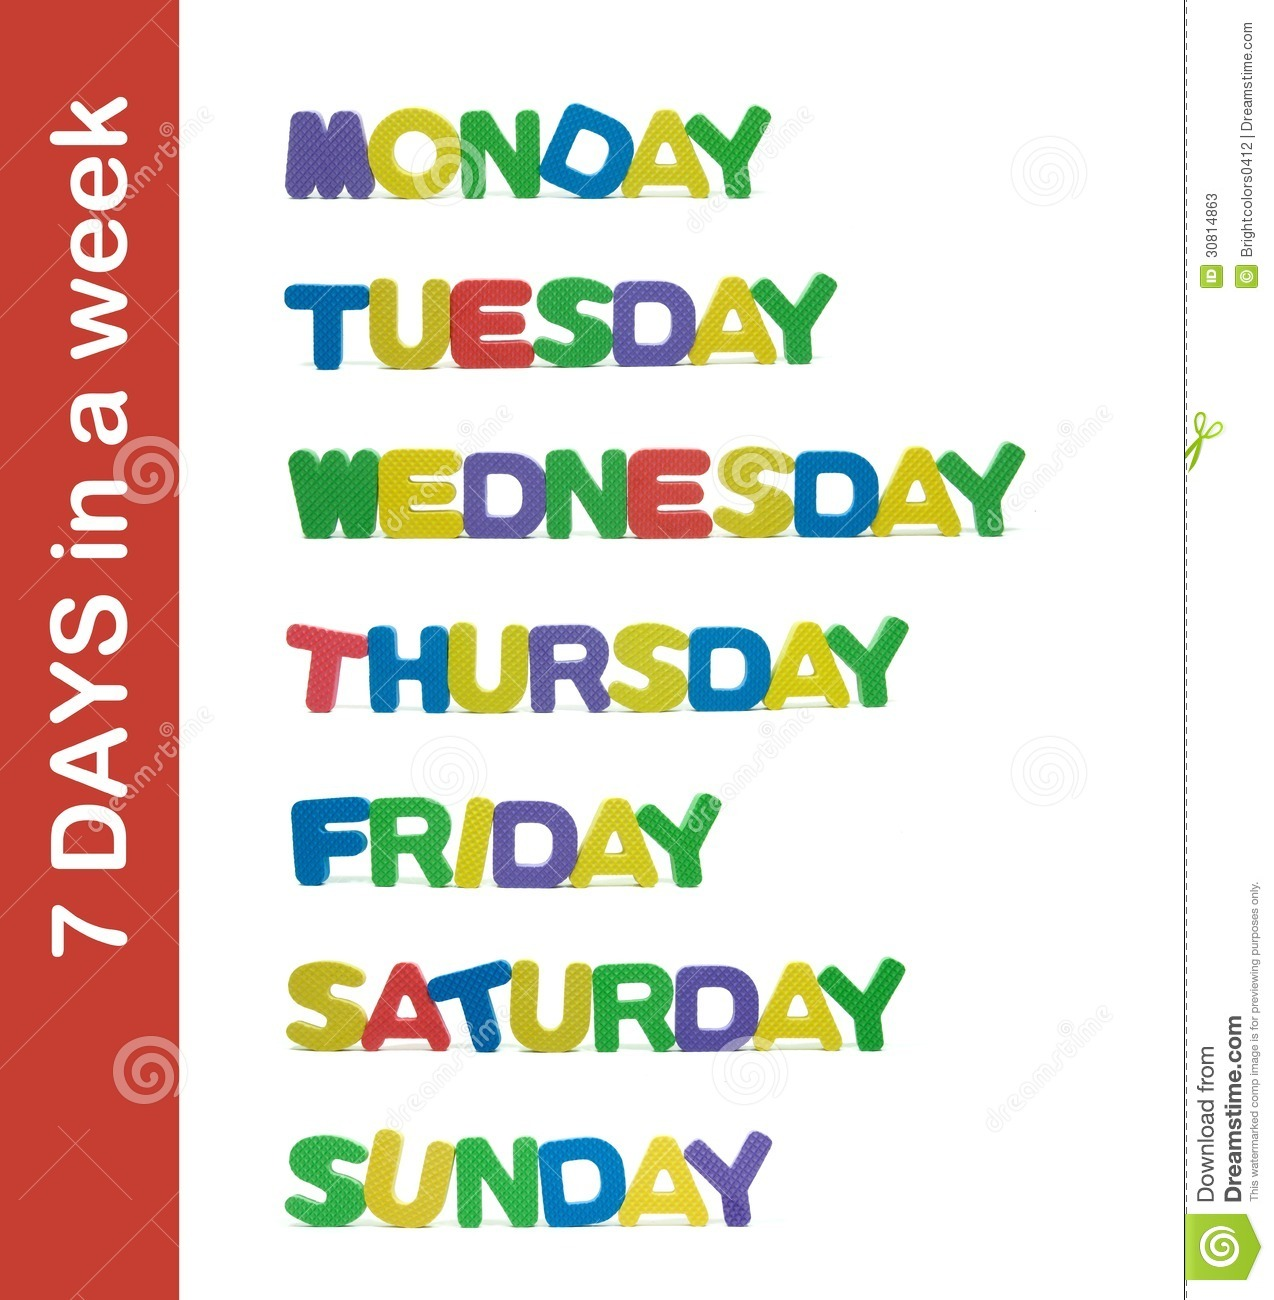 7 Days In A Week Letter Stock Photos - Image: 30814863